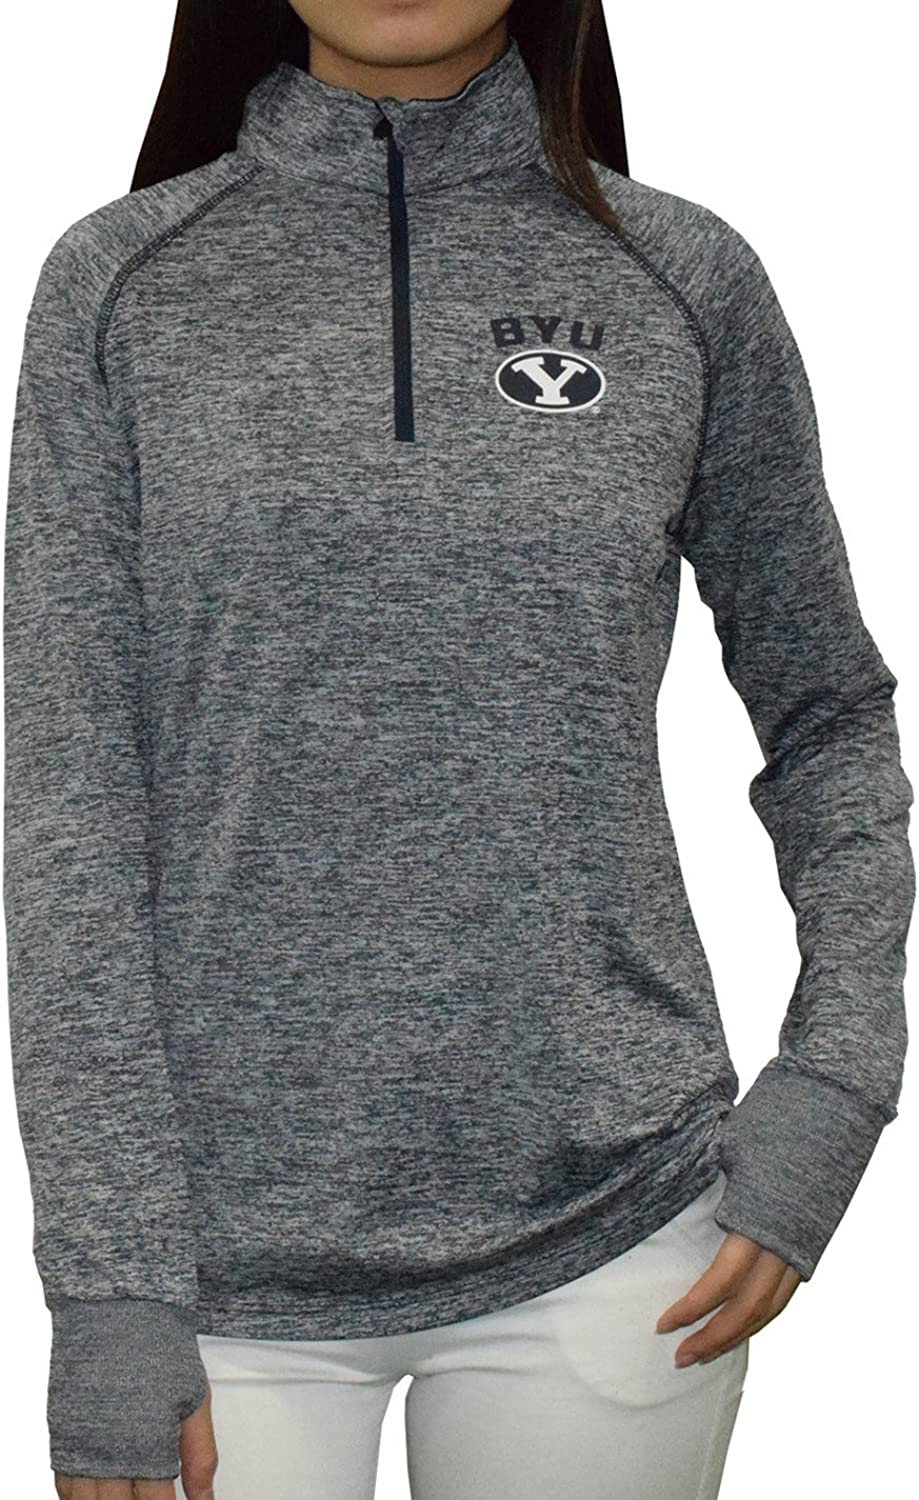 Brigham Young Cougars NCAA Womens Athletic 1 4 Zip Thermal Shirt